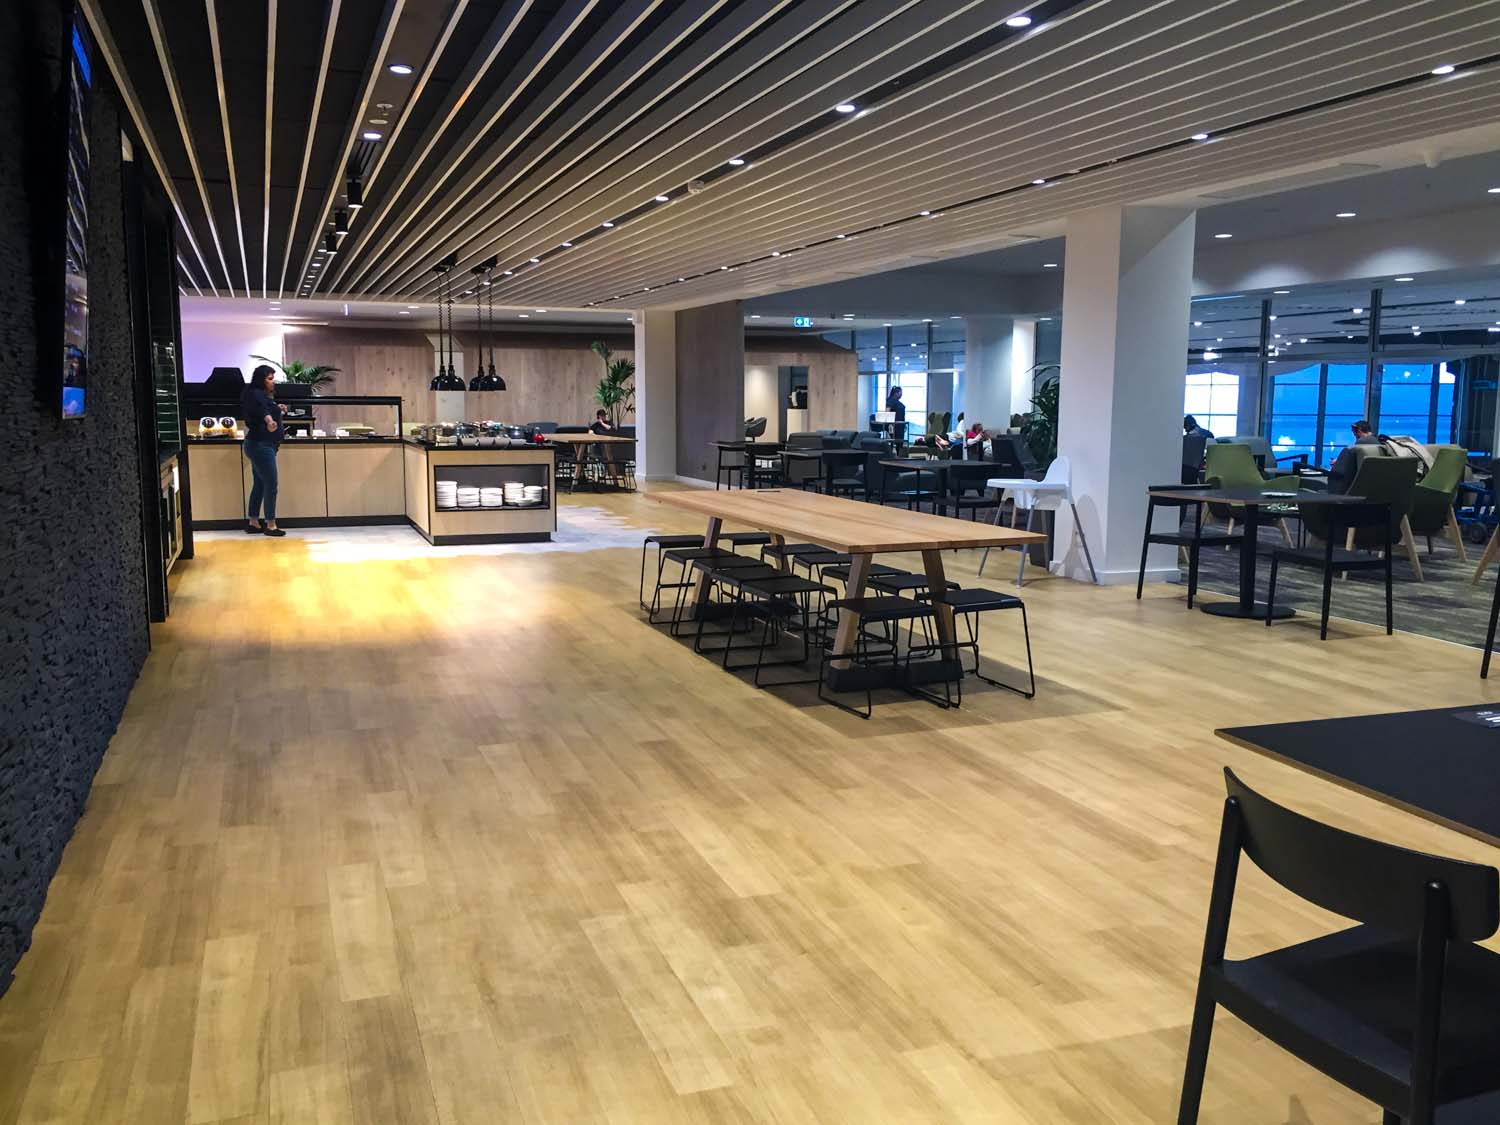 strata lounge auckland airport - wide view